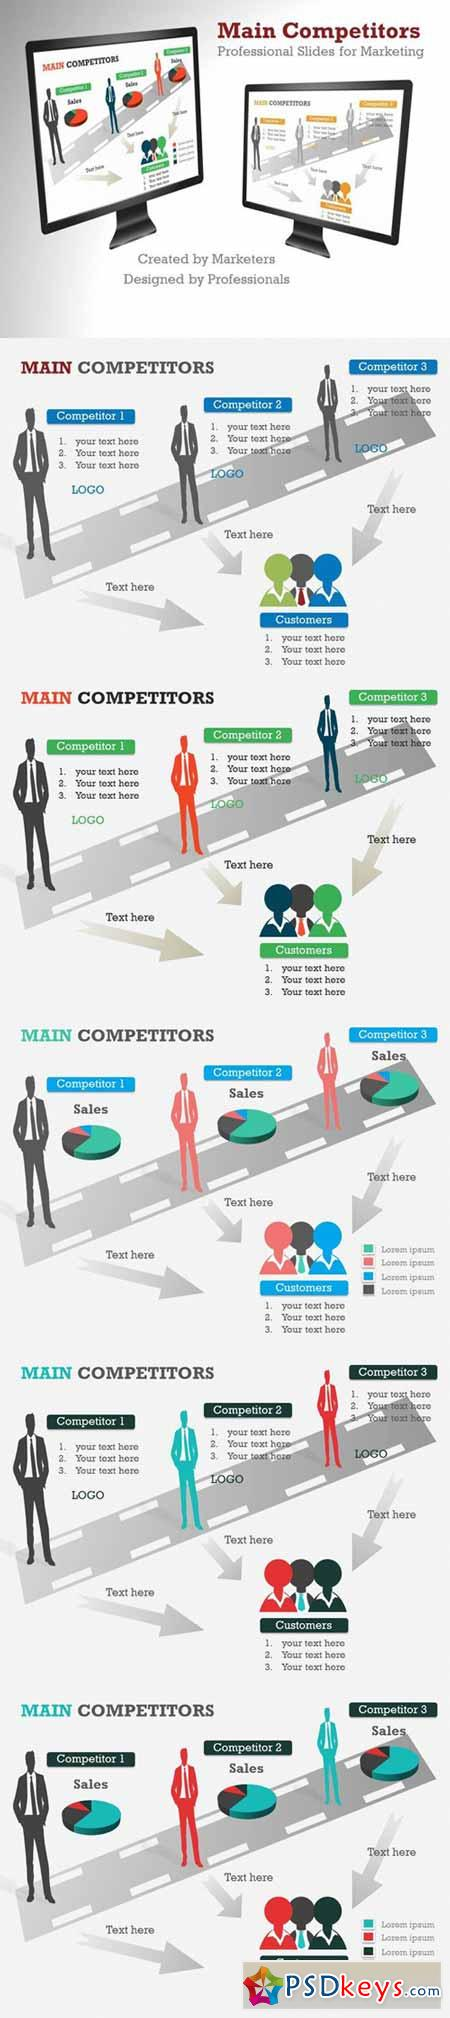 Main Competitors PowerPoint Template 372548